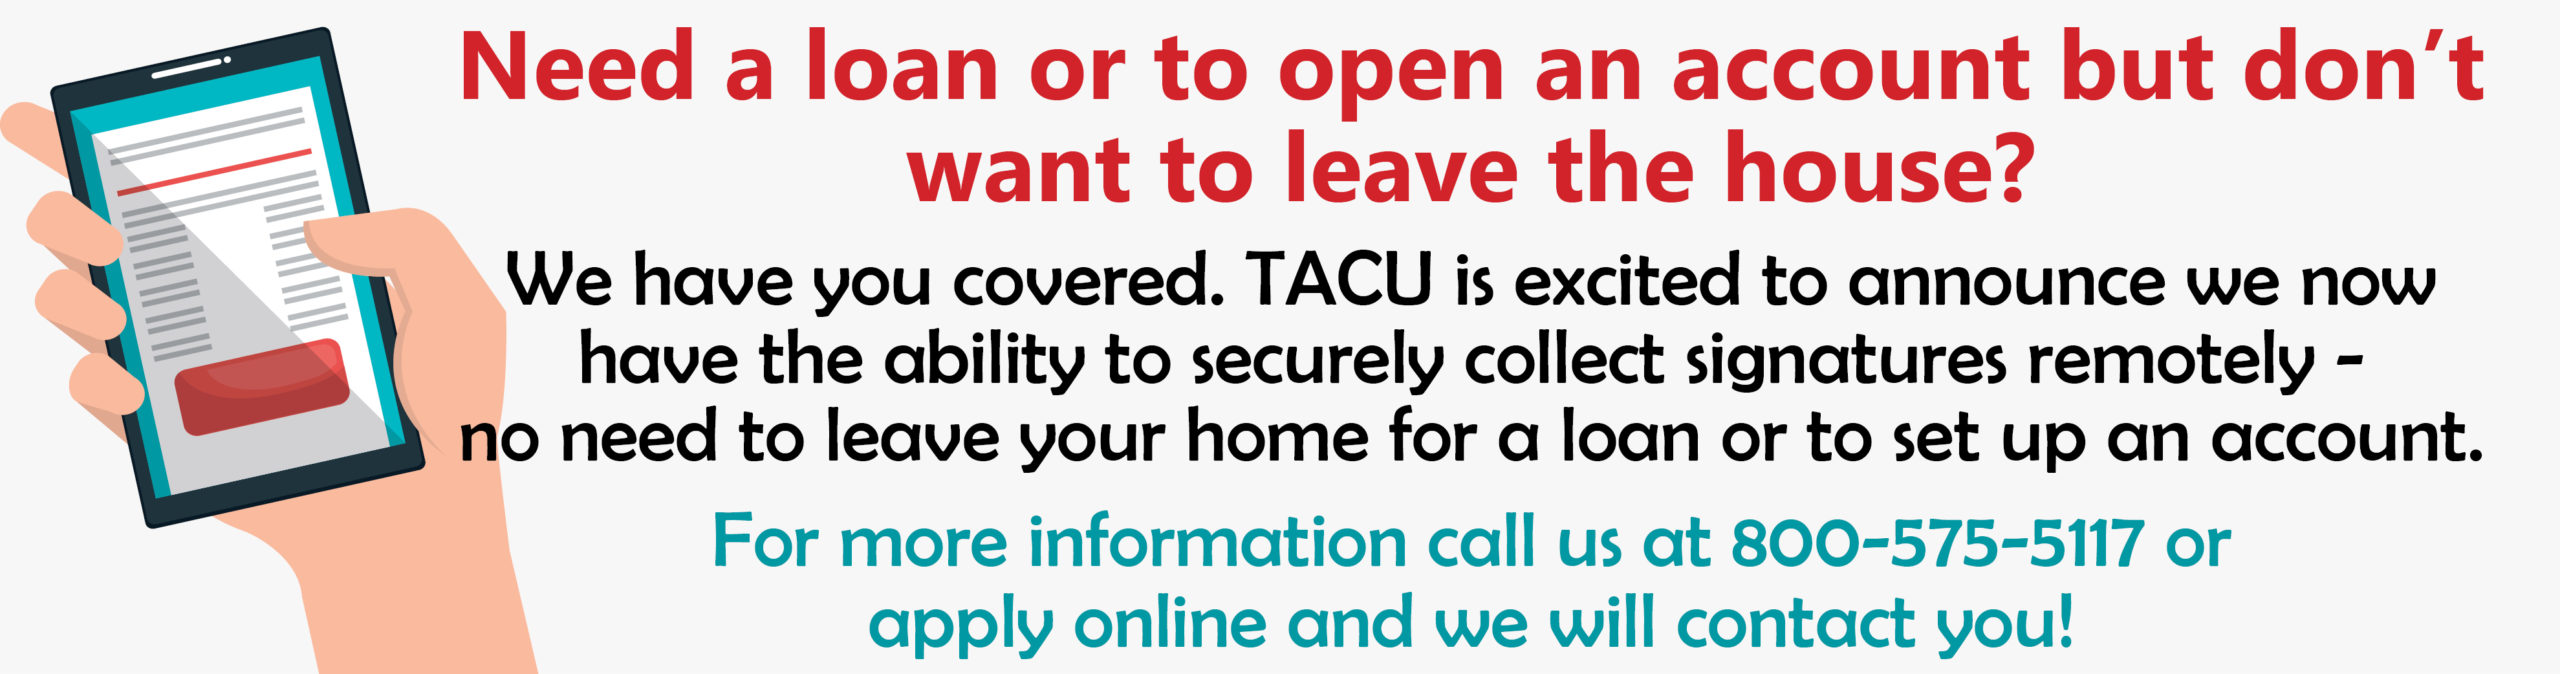 Need a loan but don't want to leave the house? Call us at 800-575-5117 or apply online.